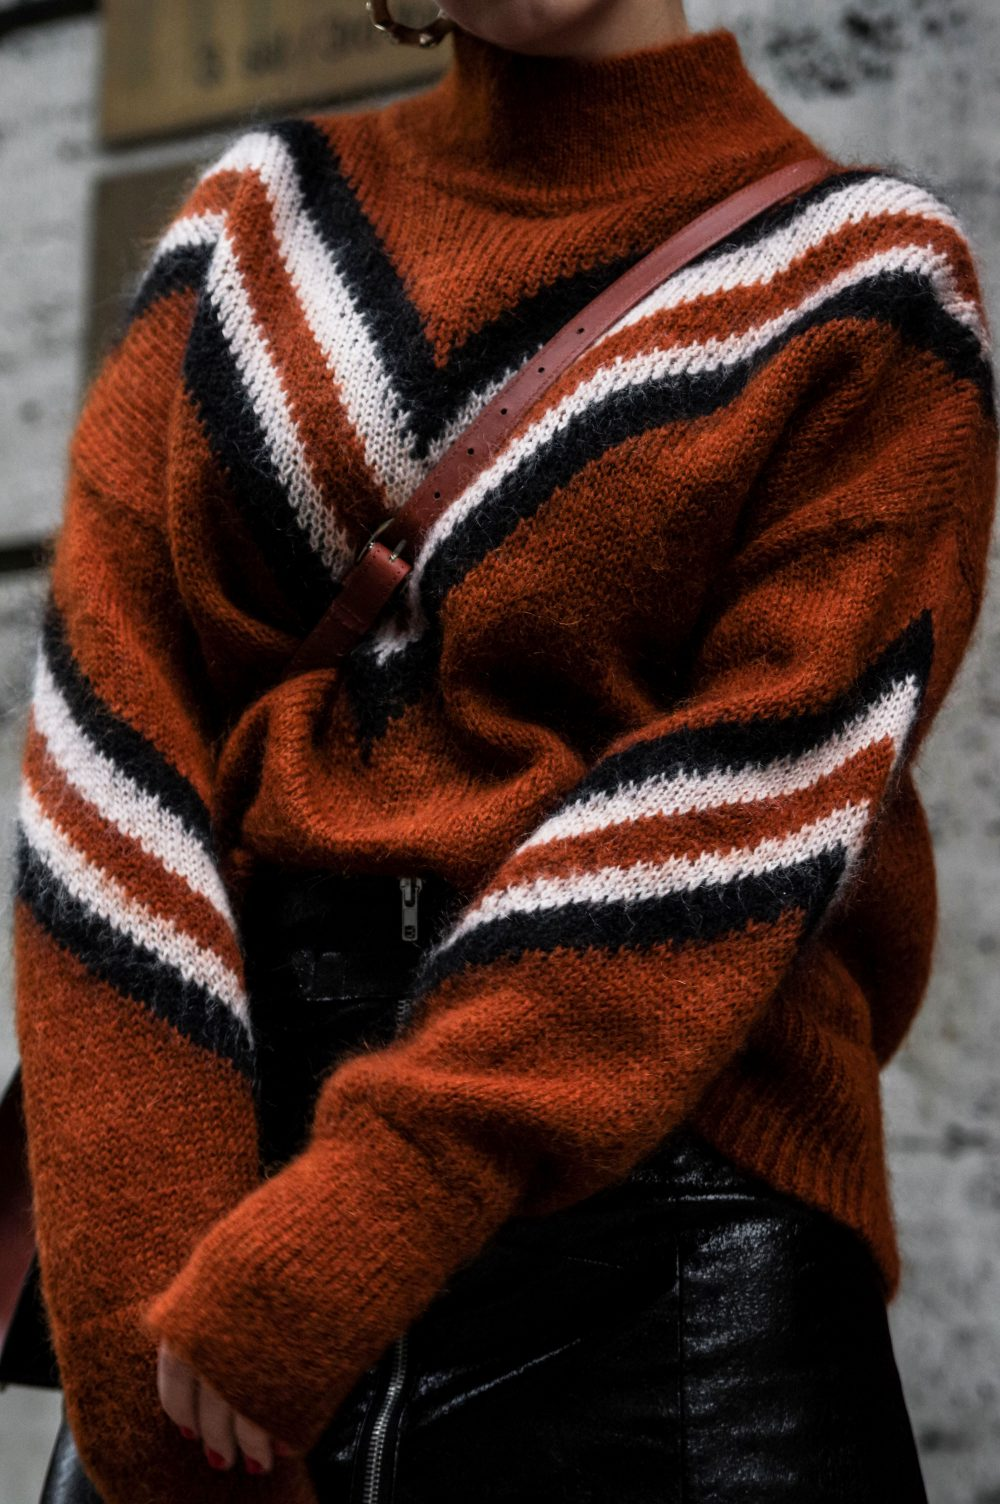 3-Scandinavian-winter-outfits-ideas-instagram-round-up-layered-outfitsweaterwork-wear-casual-style-retro-vibes-outfit.